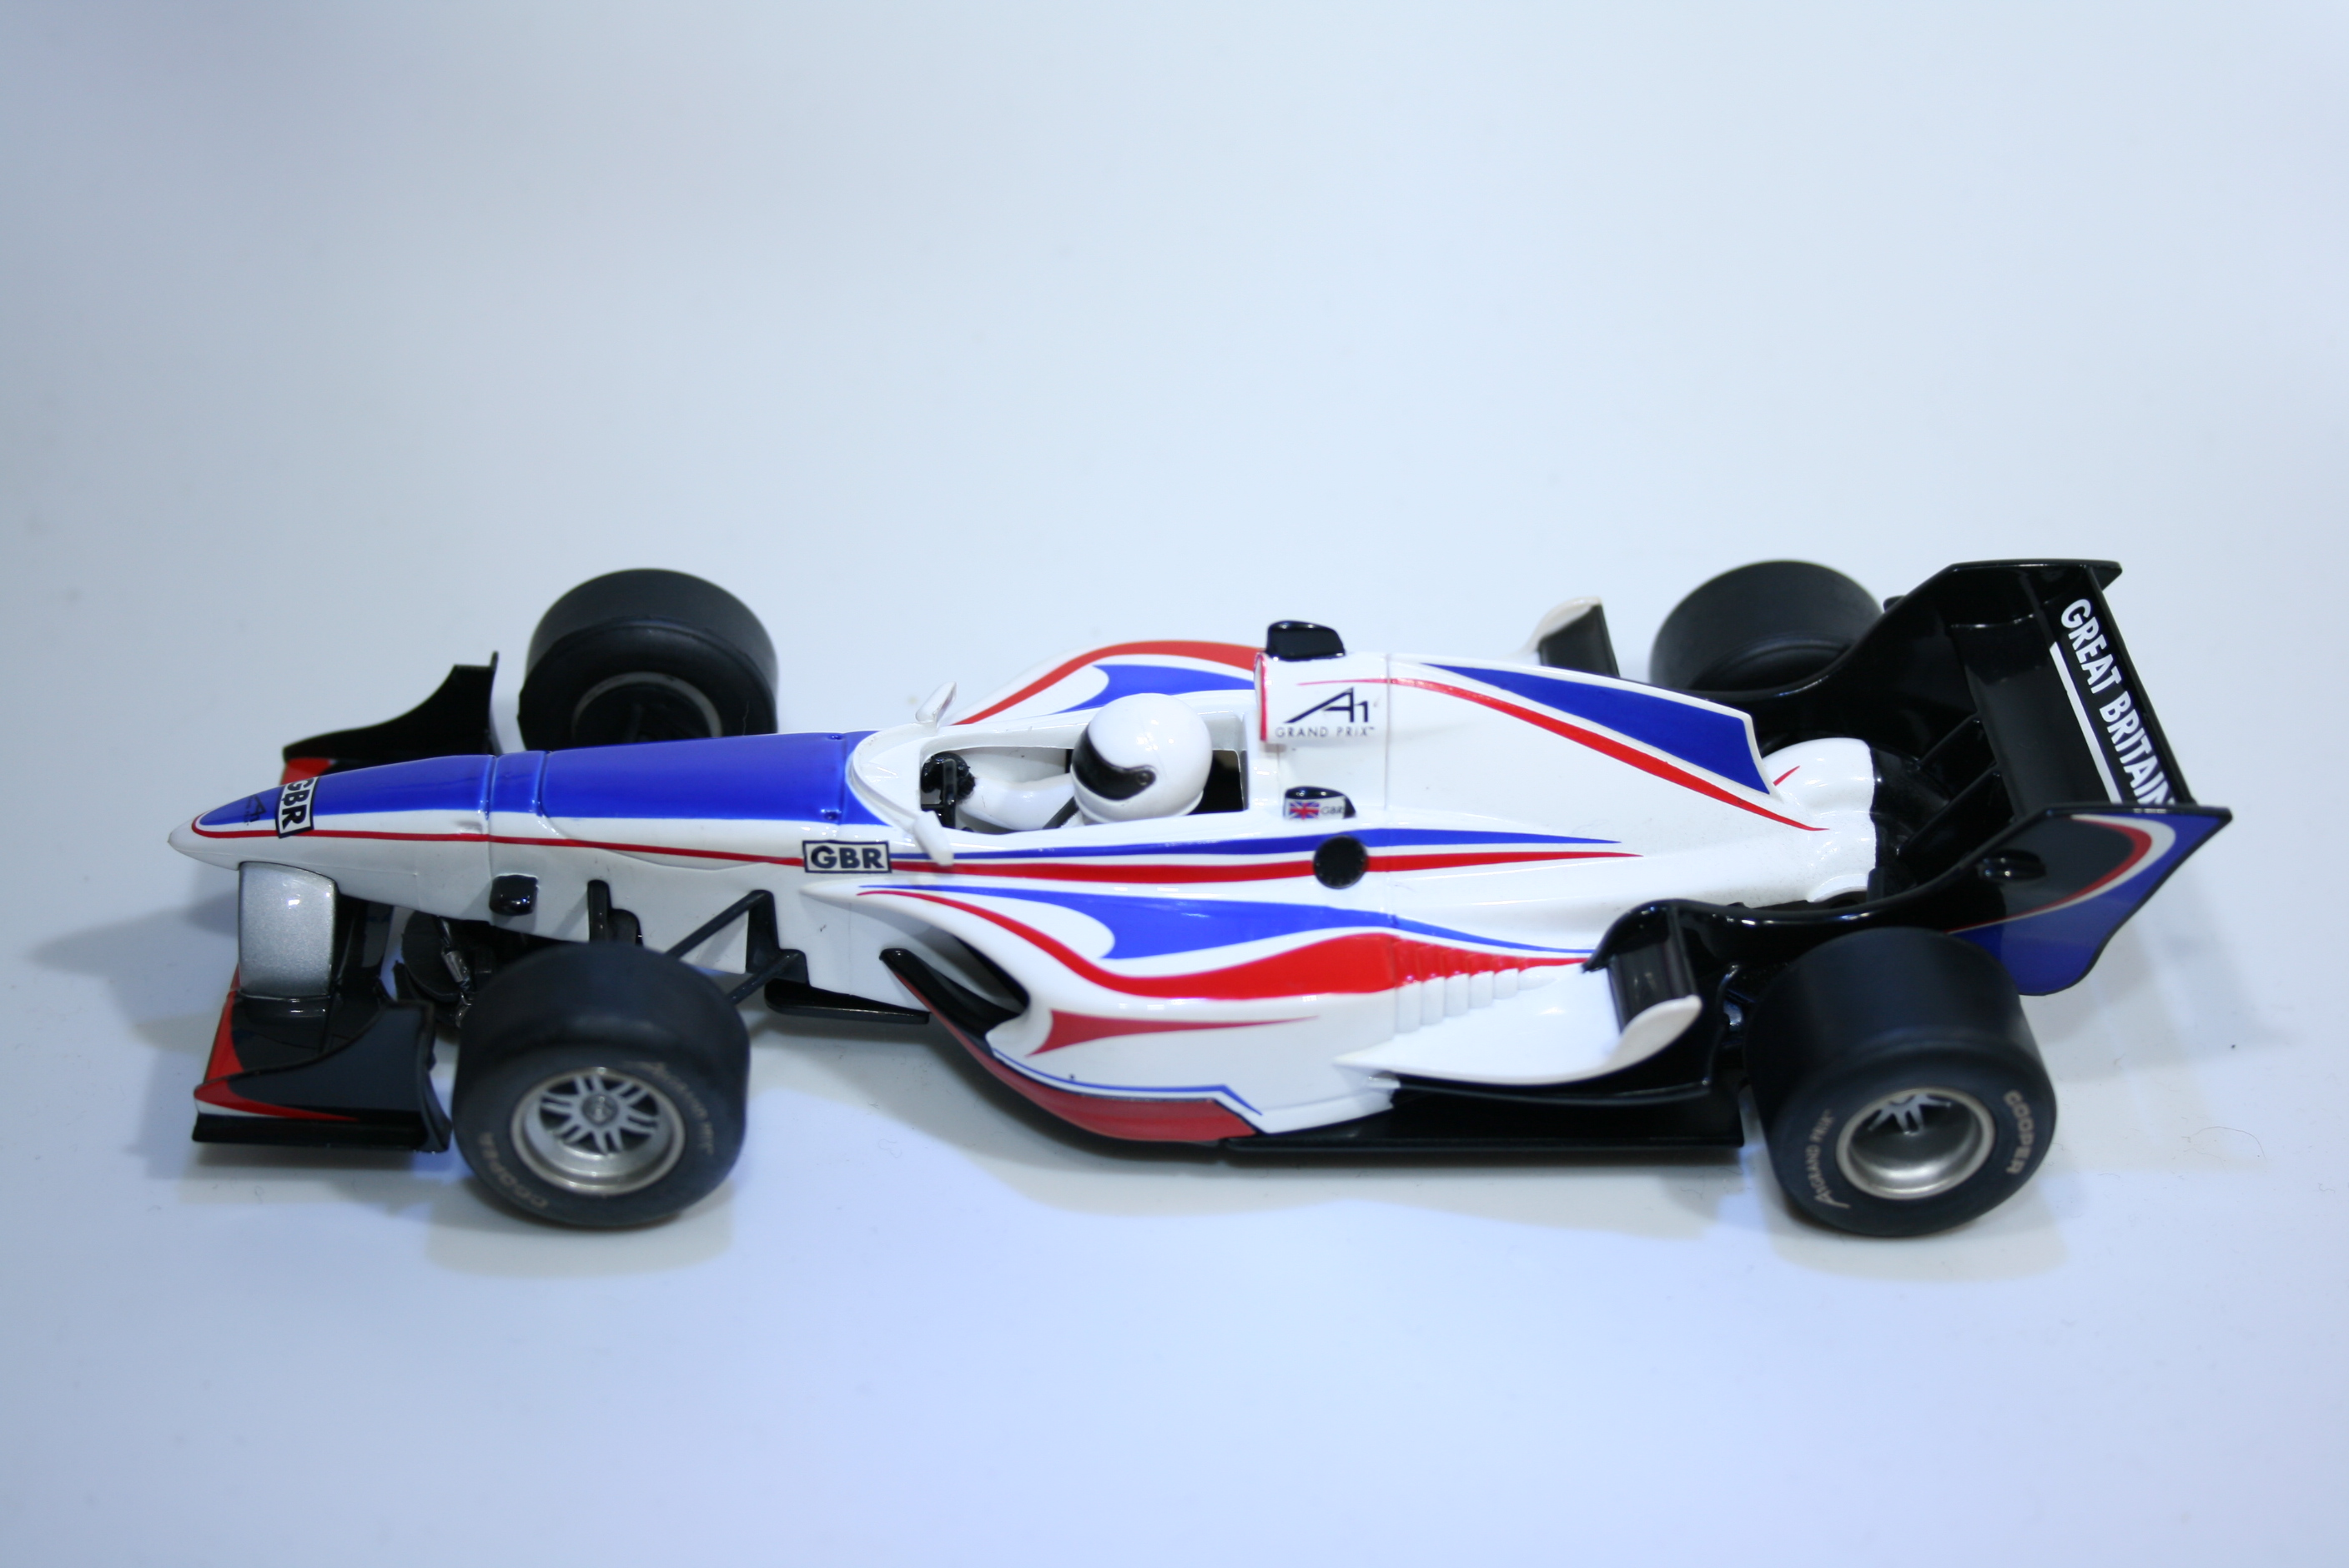 155 A1GP Great Britain 2006 O Jarvis Scalextric C2706 2006 Boxed